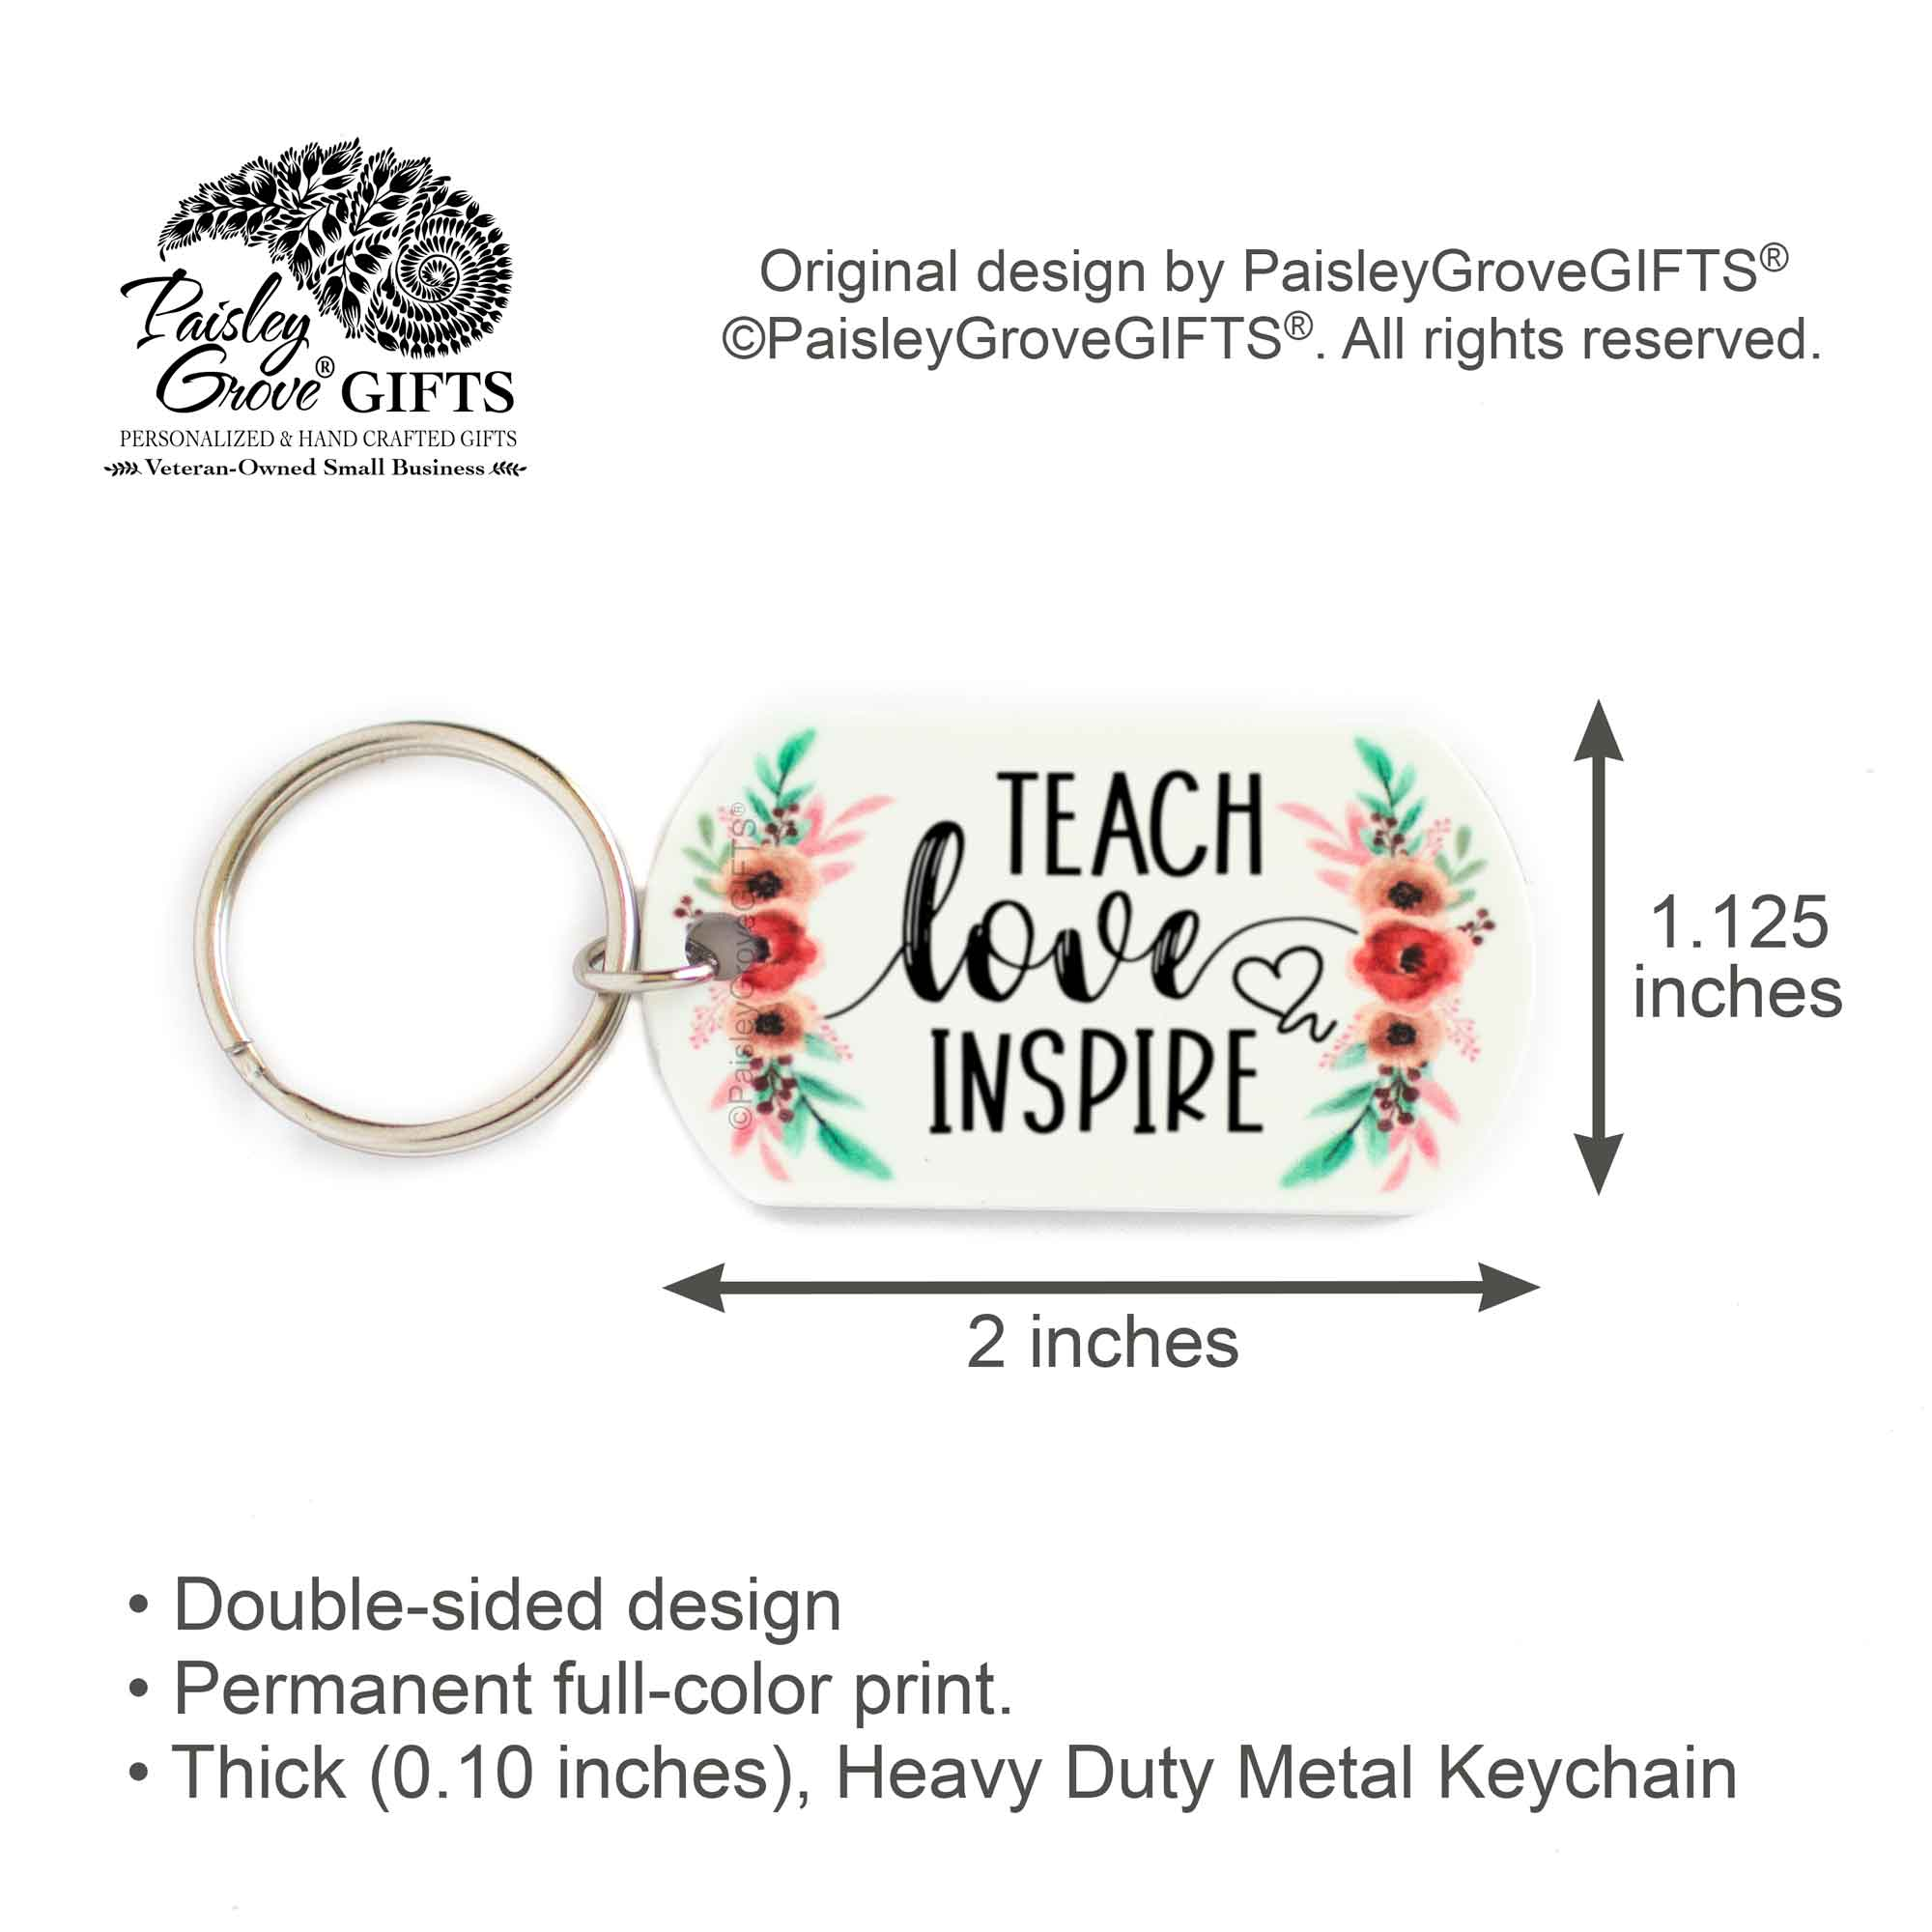 CopyrightPaisleyGroveGIFTS S005b Teach Love Inspire teacher key ring watercolor flowers measurement